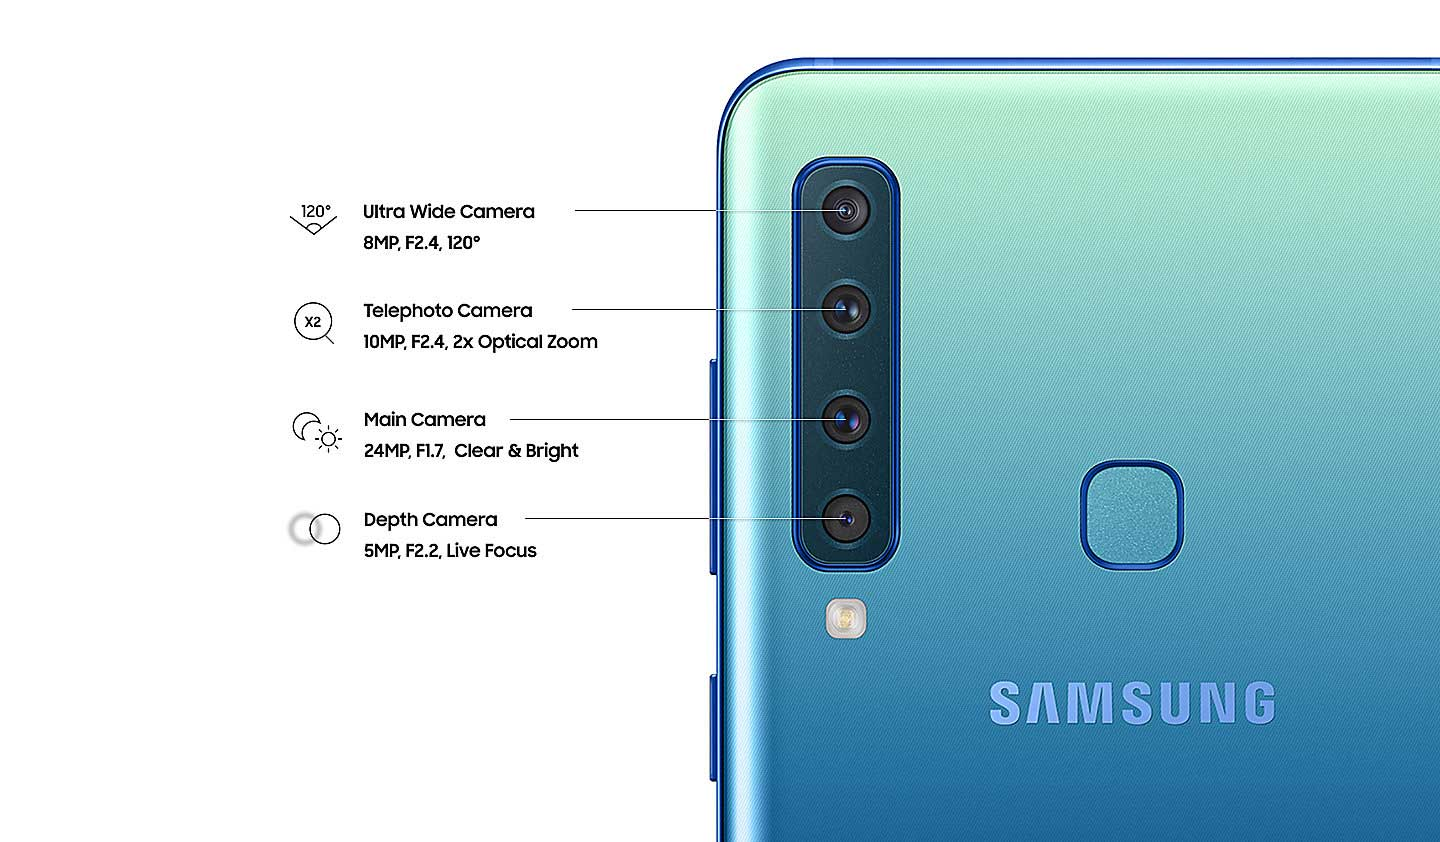 Samsung Galaxy A9 expected to launch in India soon